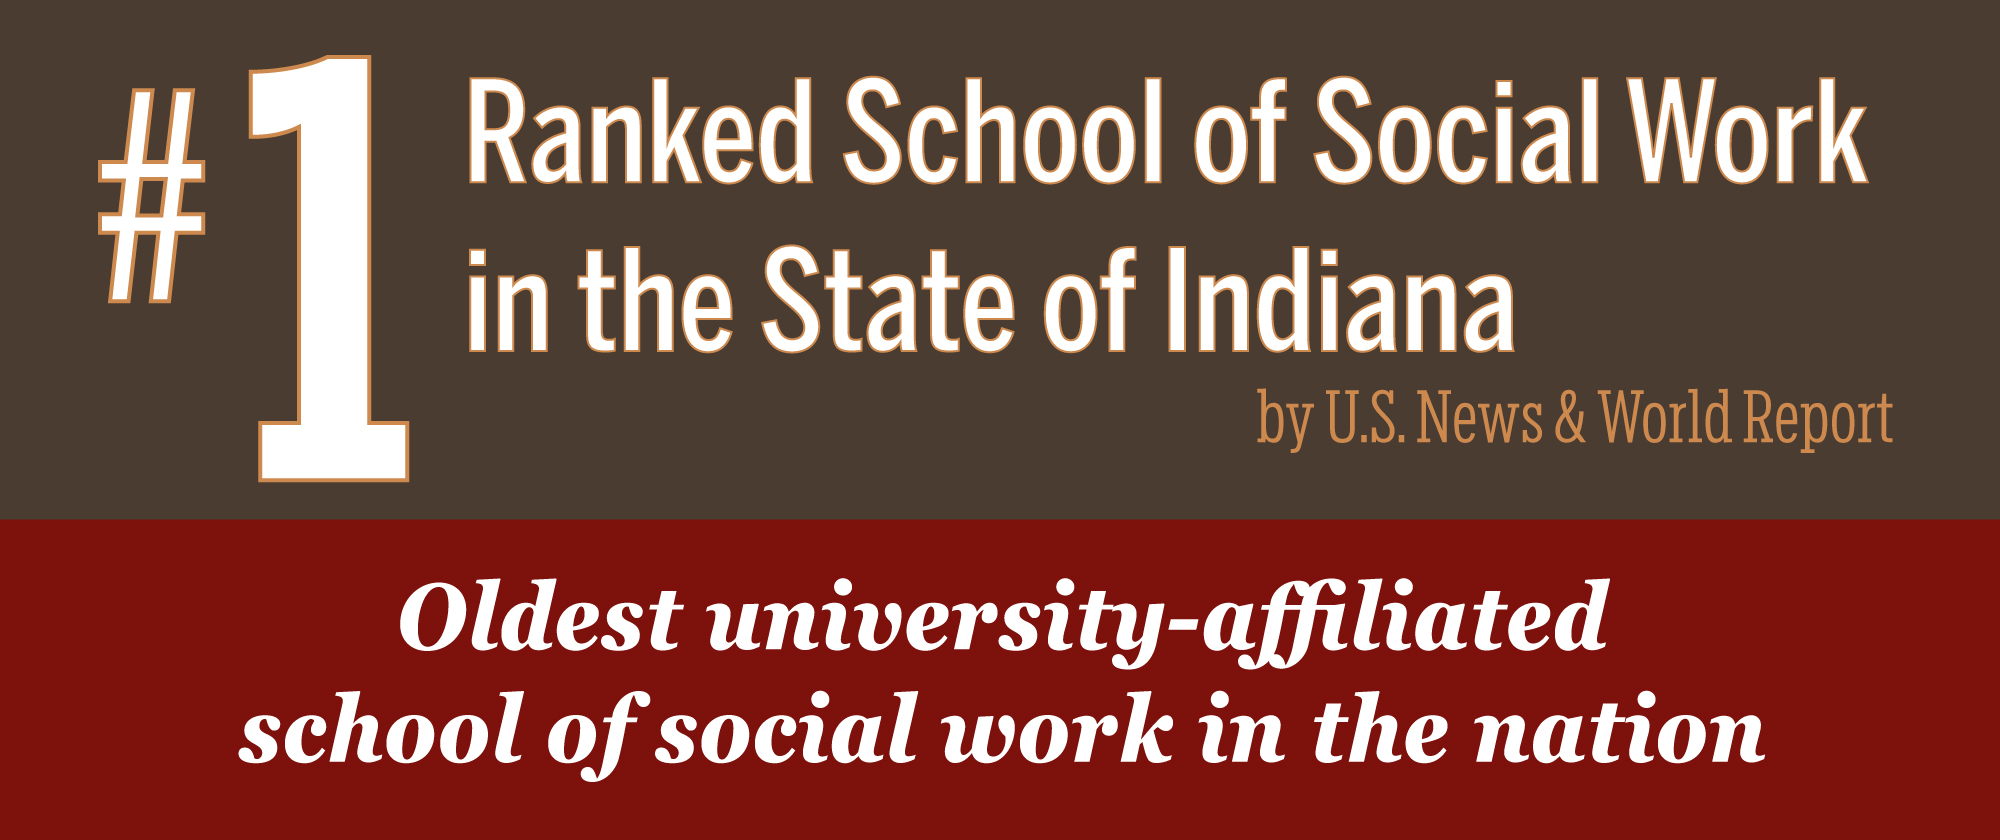 Ranked #1 School of Social Work  in the State of Indiana